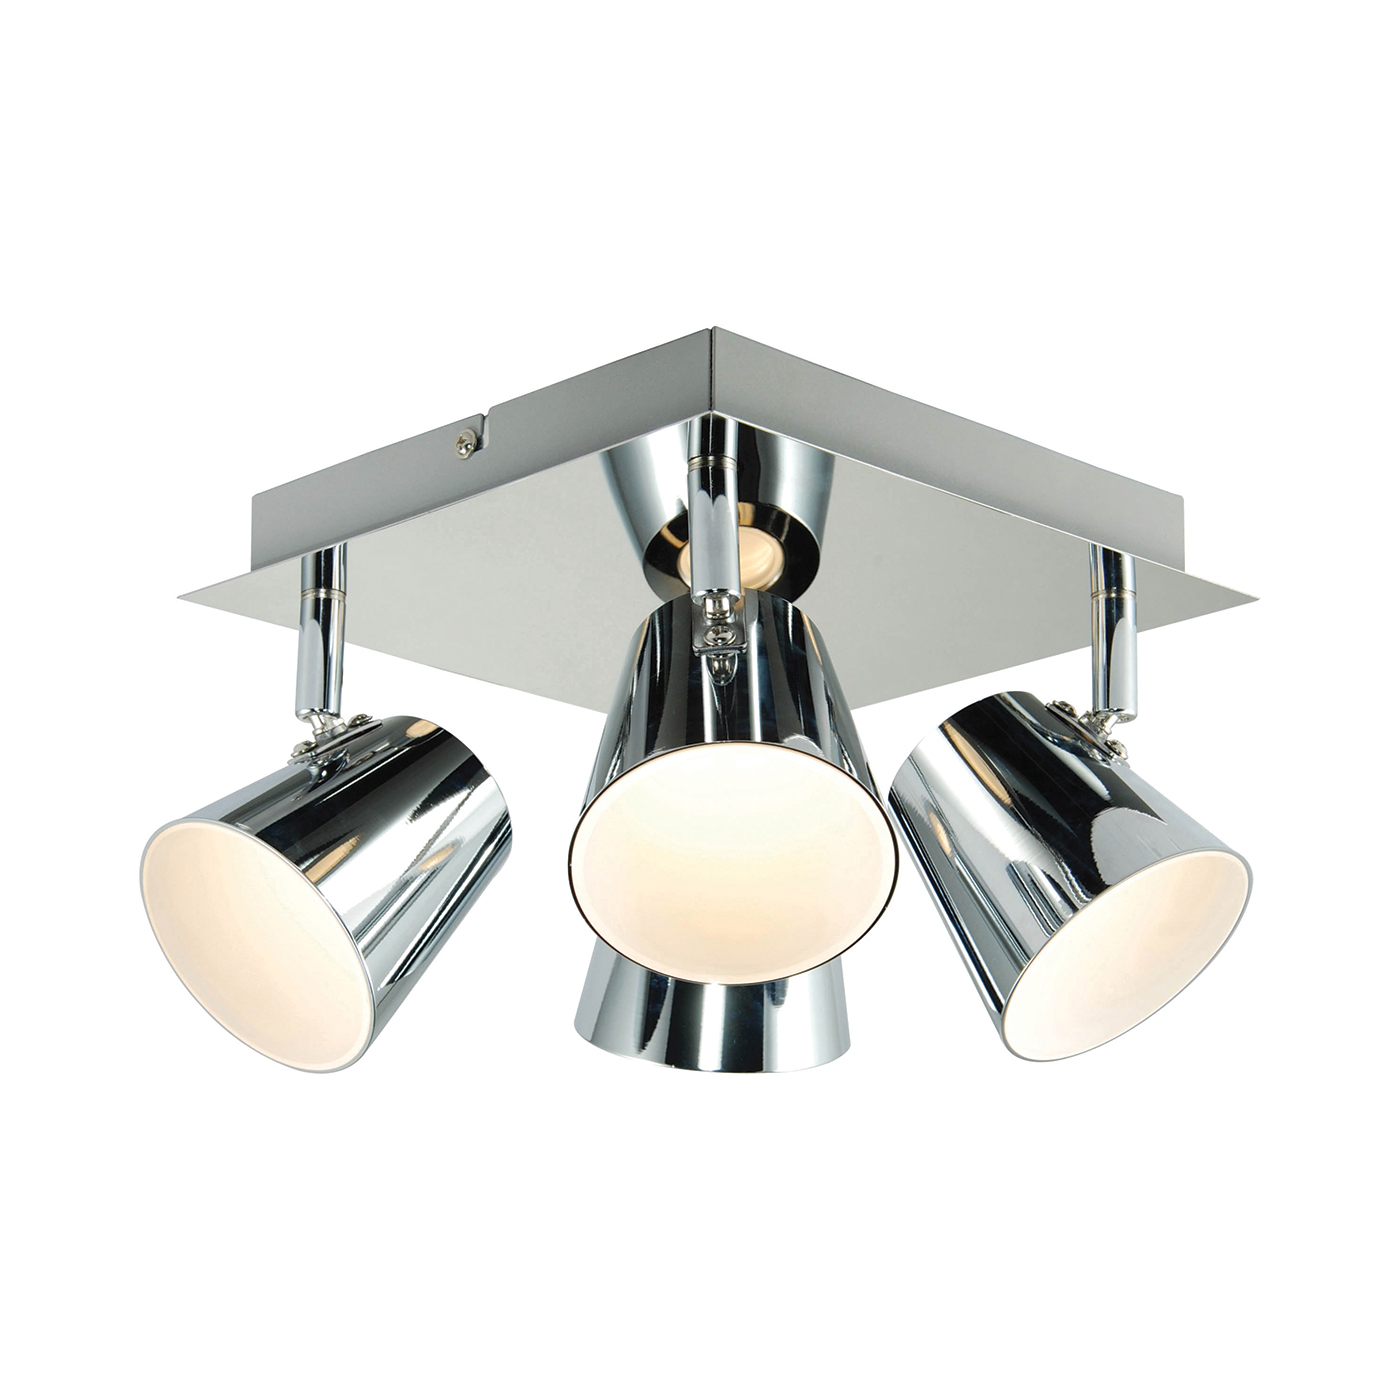 Endon Torsion ceiling spotlight square 4x 5W Chrome effect plate frosted acrylic Thumbnail 1